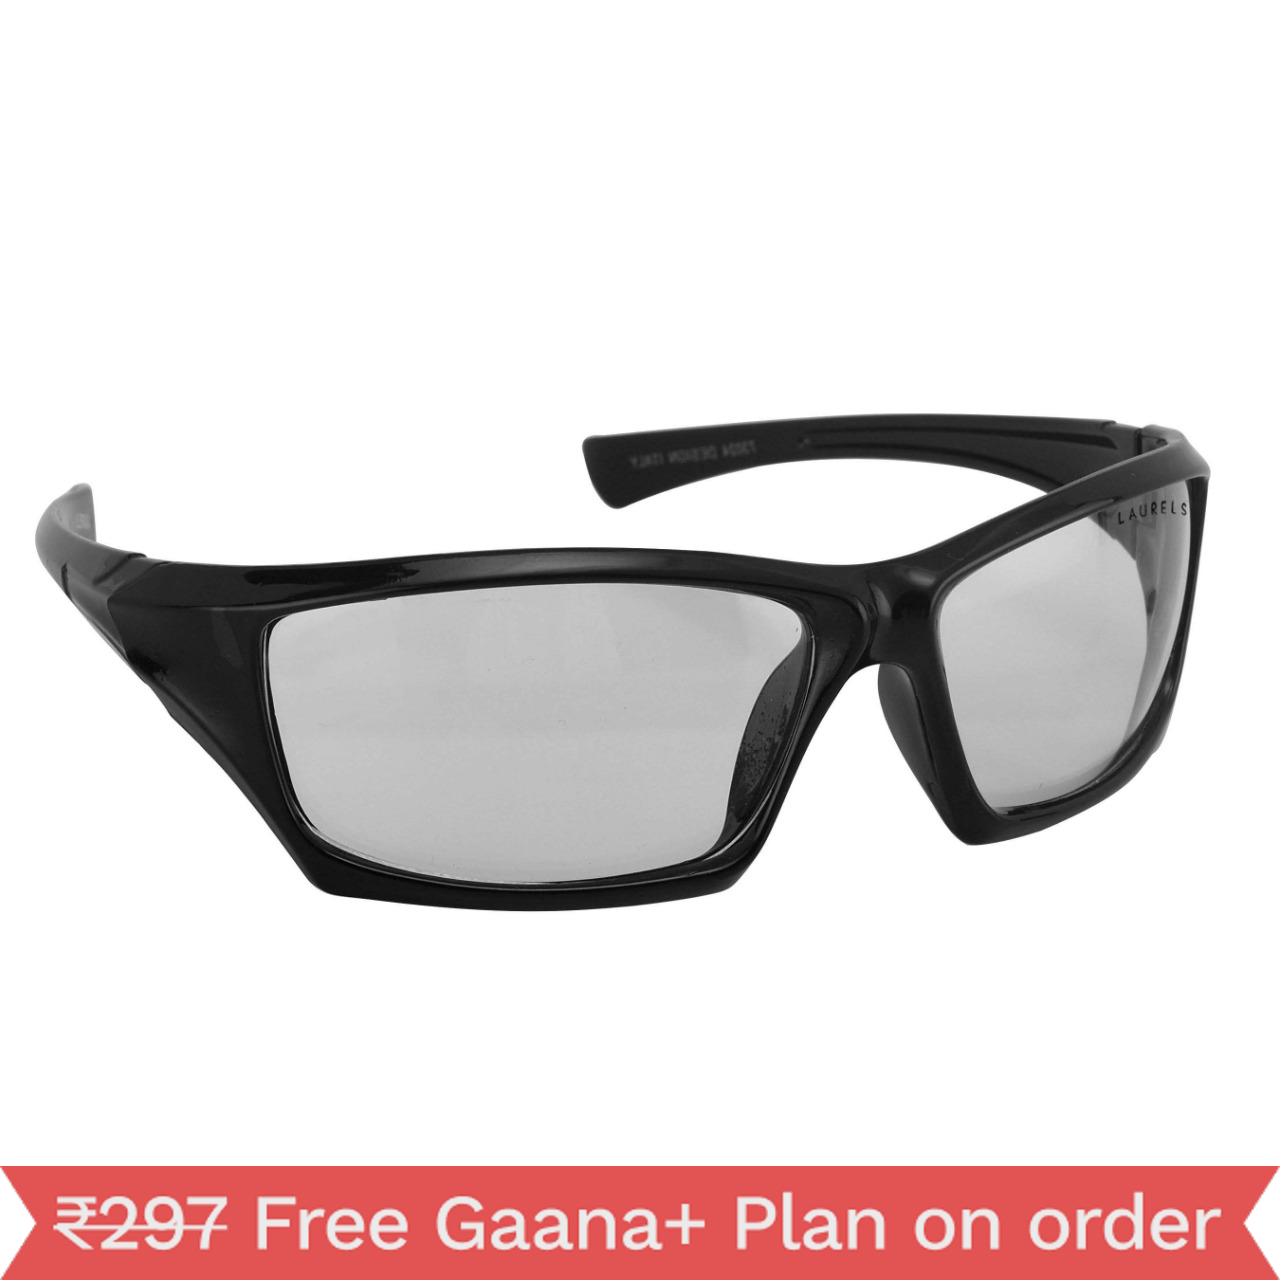 Walrus Black Polycarbonate Wayfarers Sunglass For Men